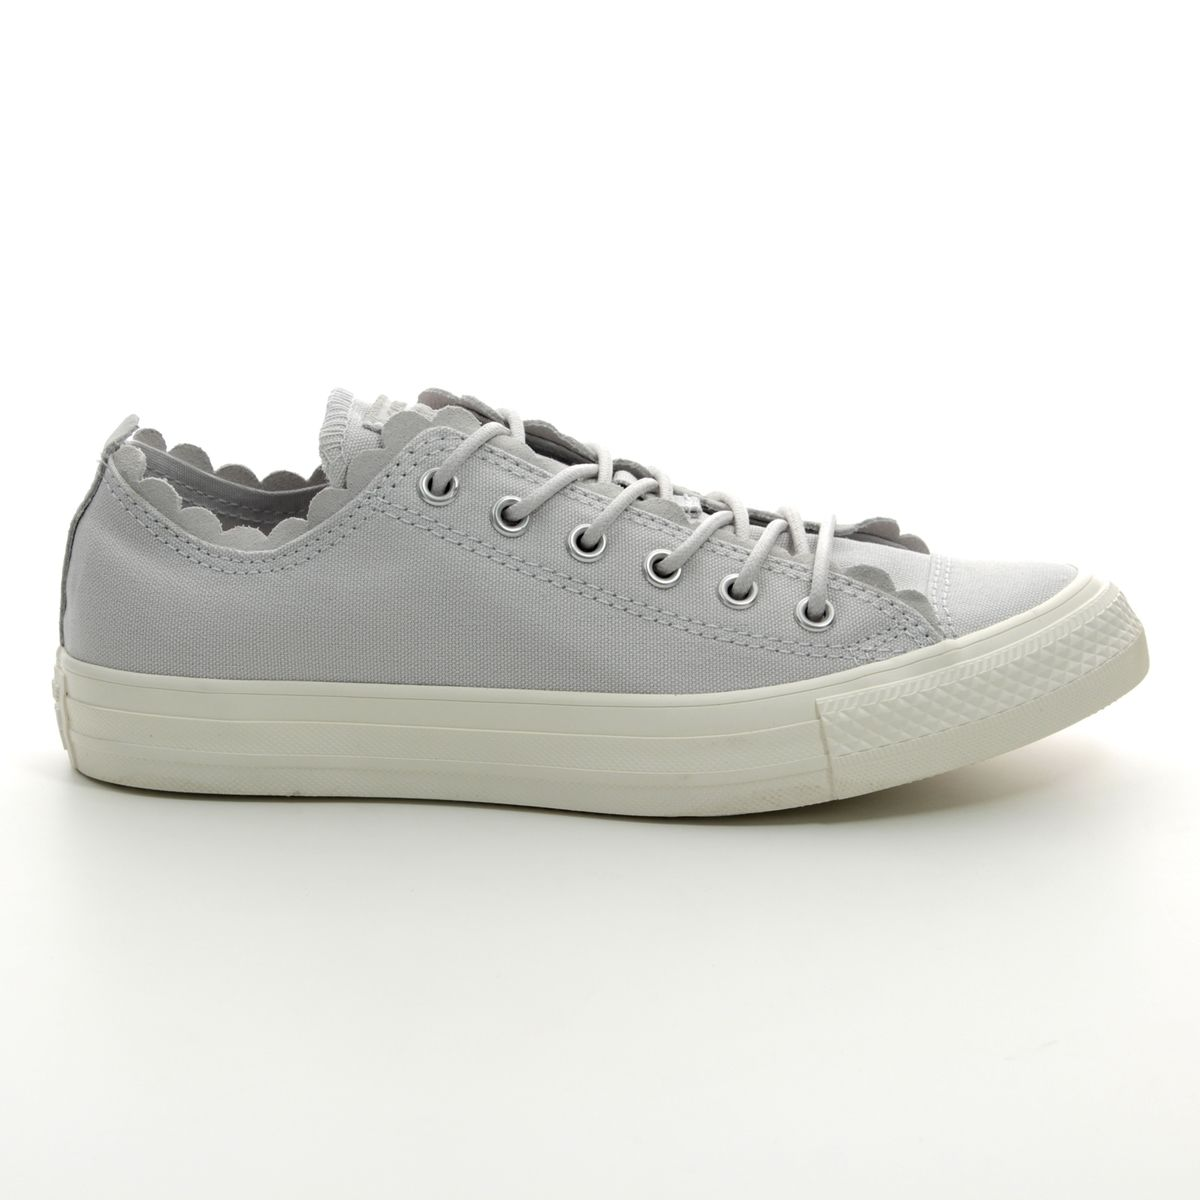 89d596151a7 Converse Trainers - Light Grey - 564112C ALL STAR FRILLS